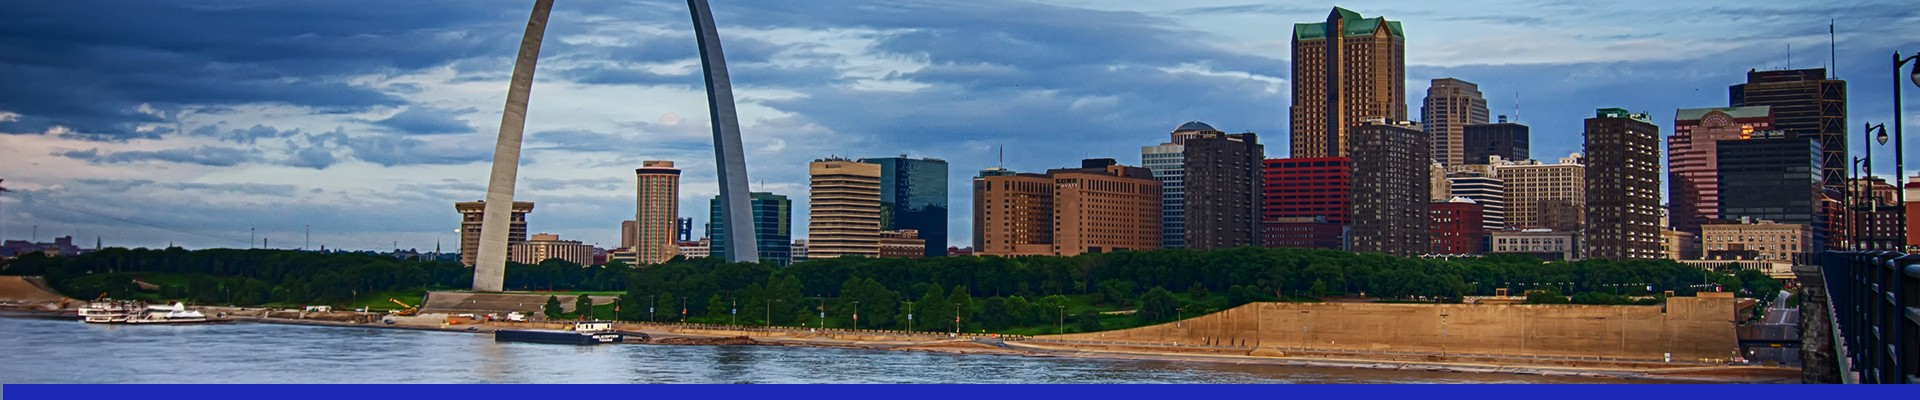 Explore the surrounding areas of Elephant Rocks State Park, like Downtown St. Louis.